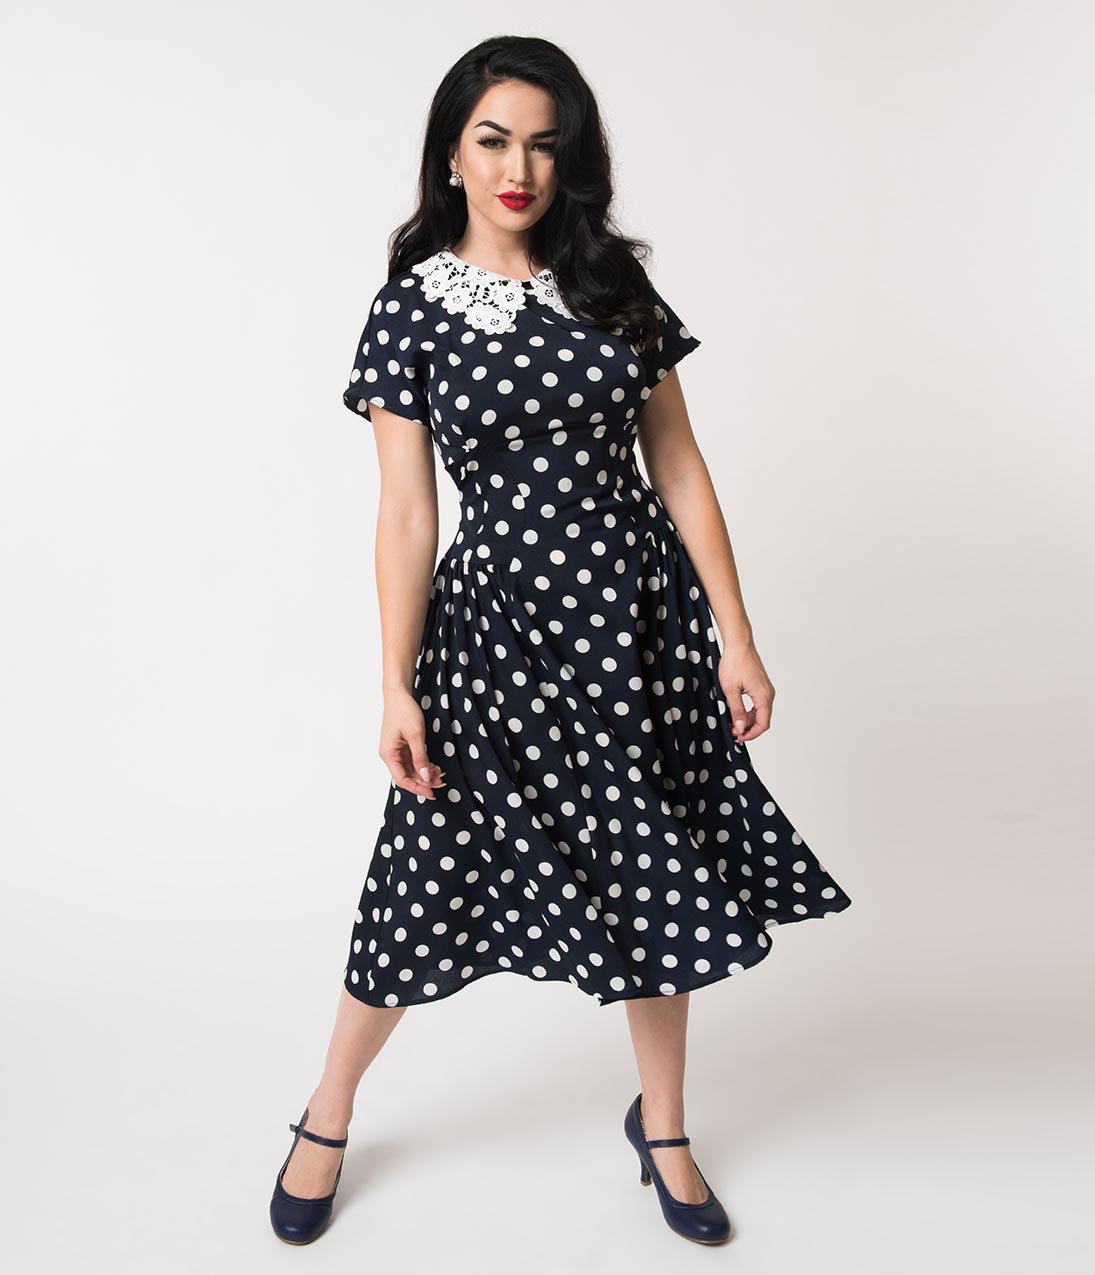 1940s Fashion Advice for Short Women Unique Vintage 1940S Navy  White Polka Dot Lace Collar Margie Dress $41.00 AT vintagedancer.com